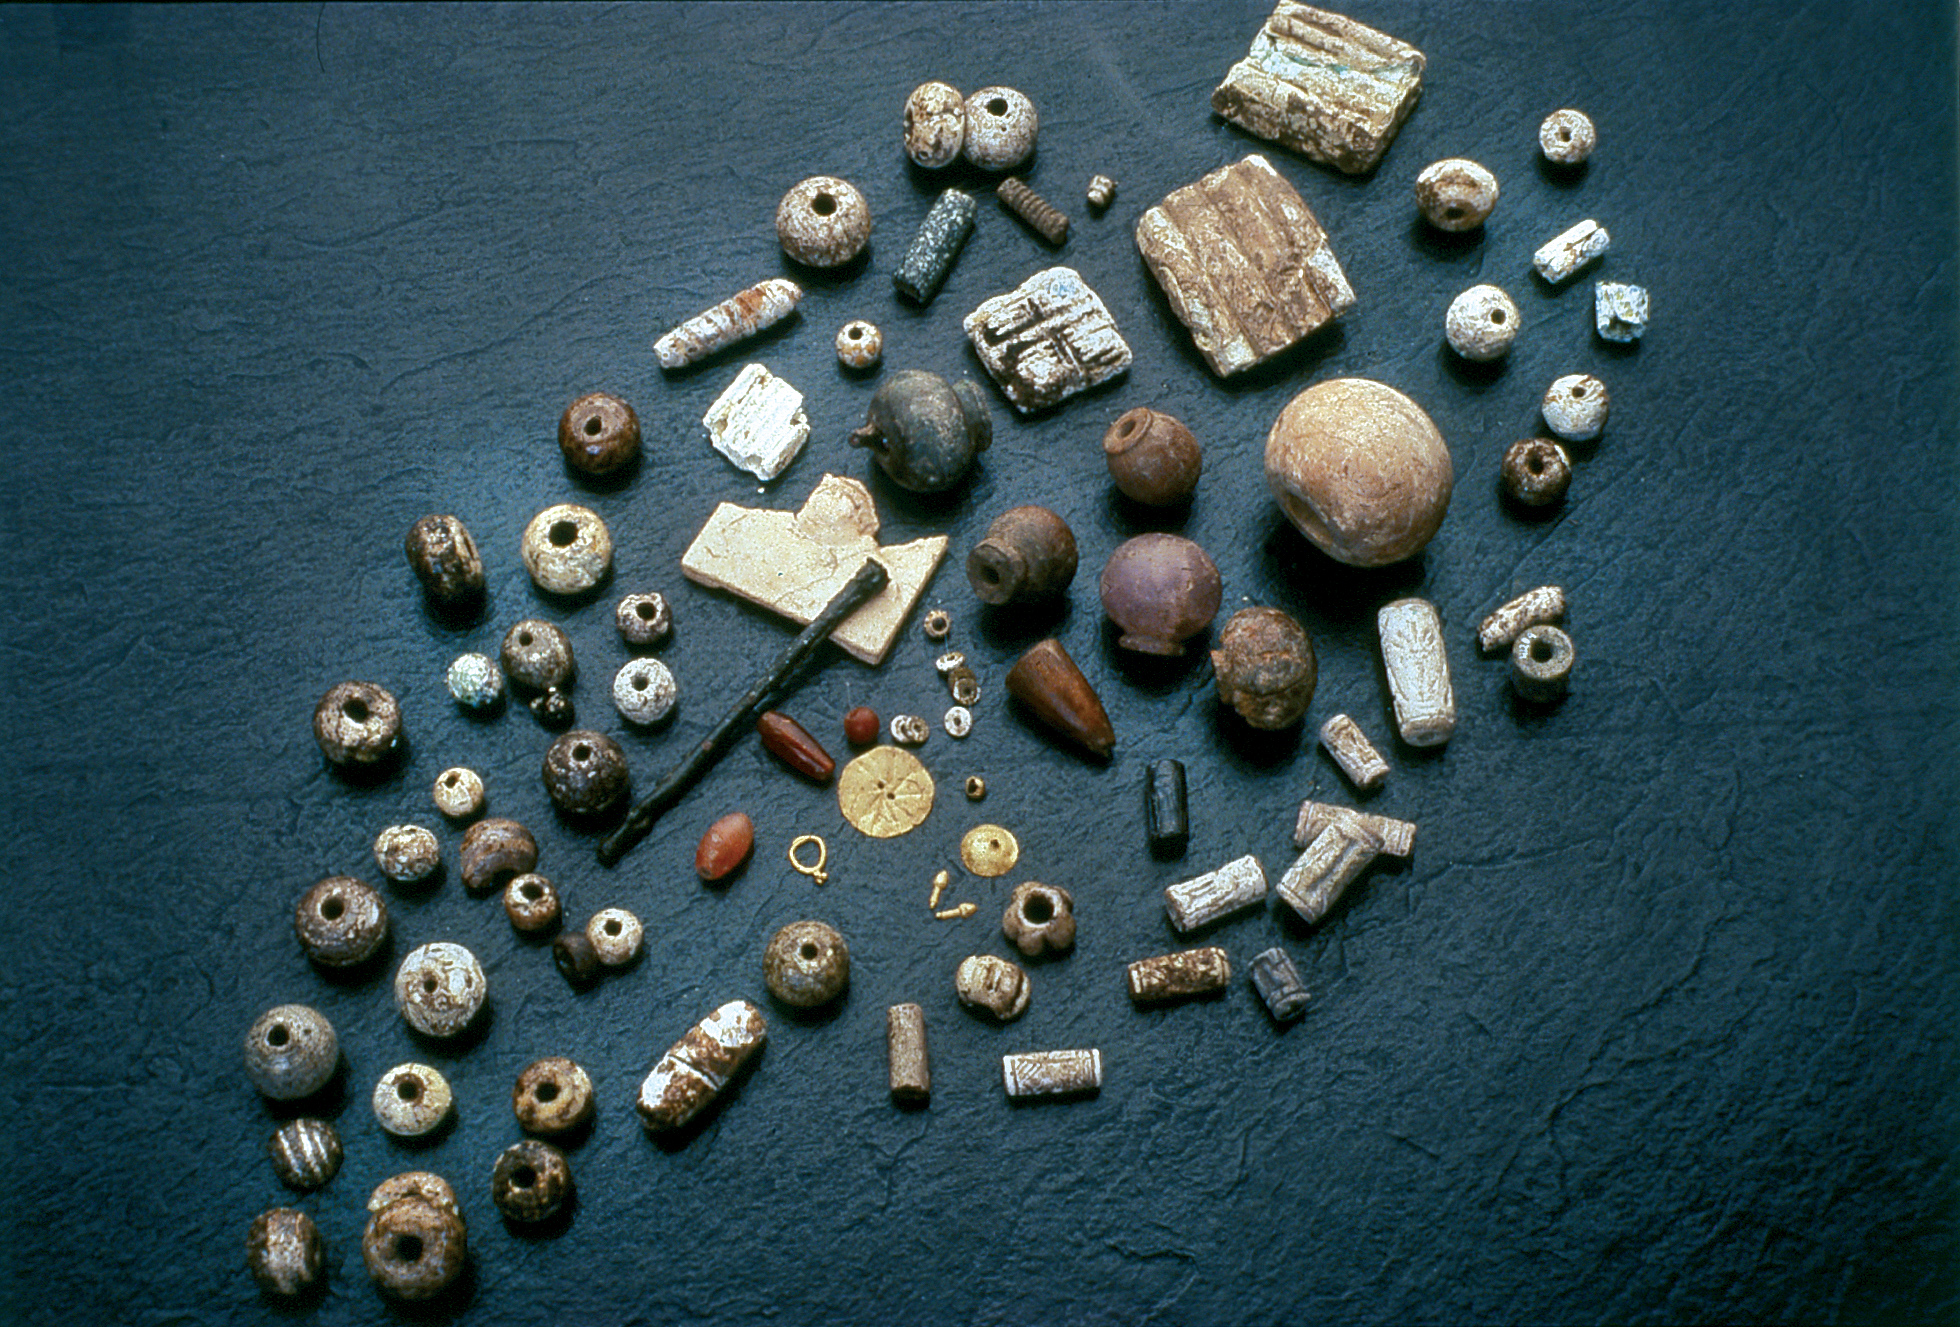 Jewellery, beads, cosmetic sticks and cylinder seals found by the jewellery box